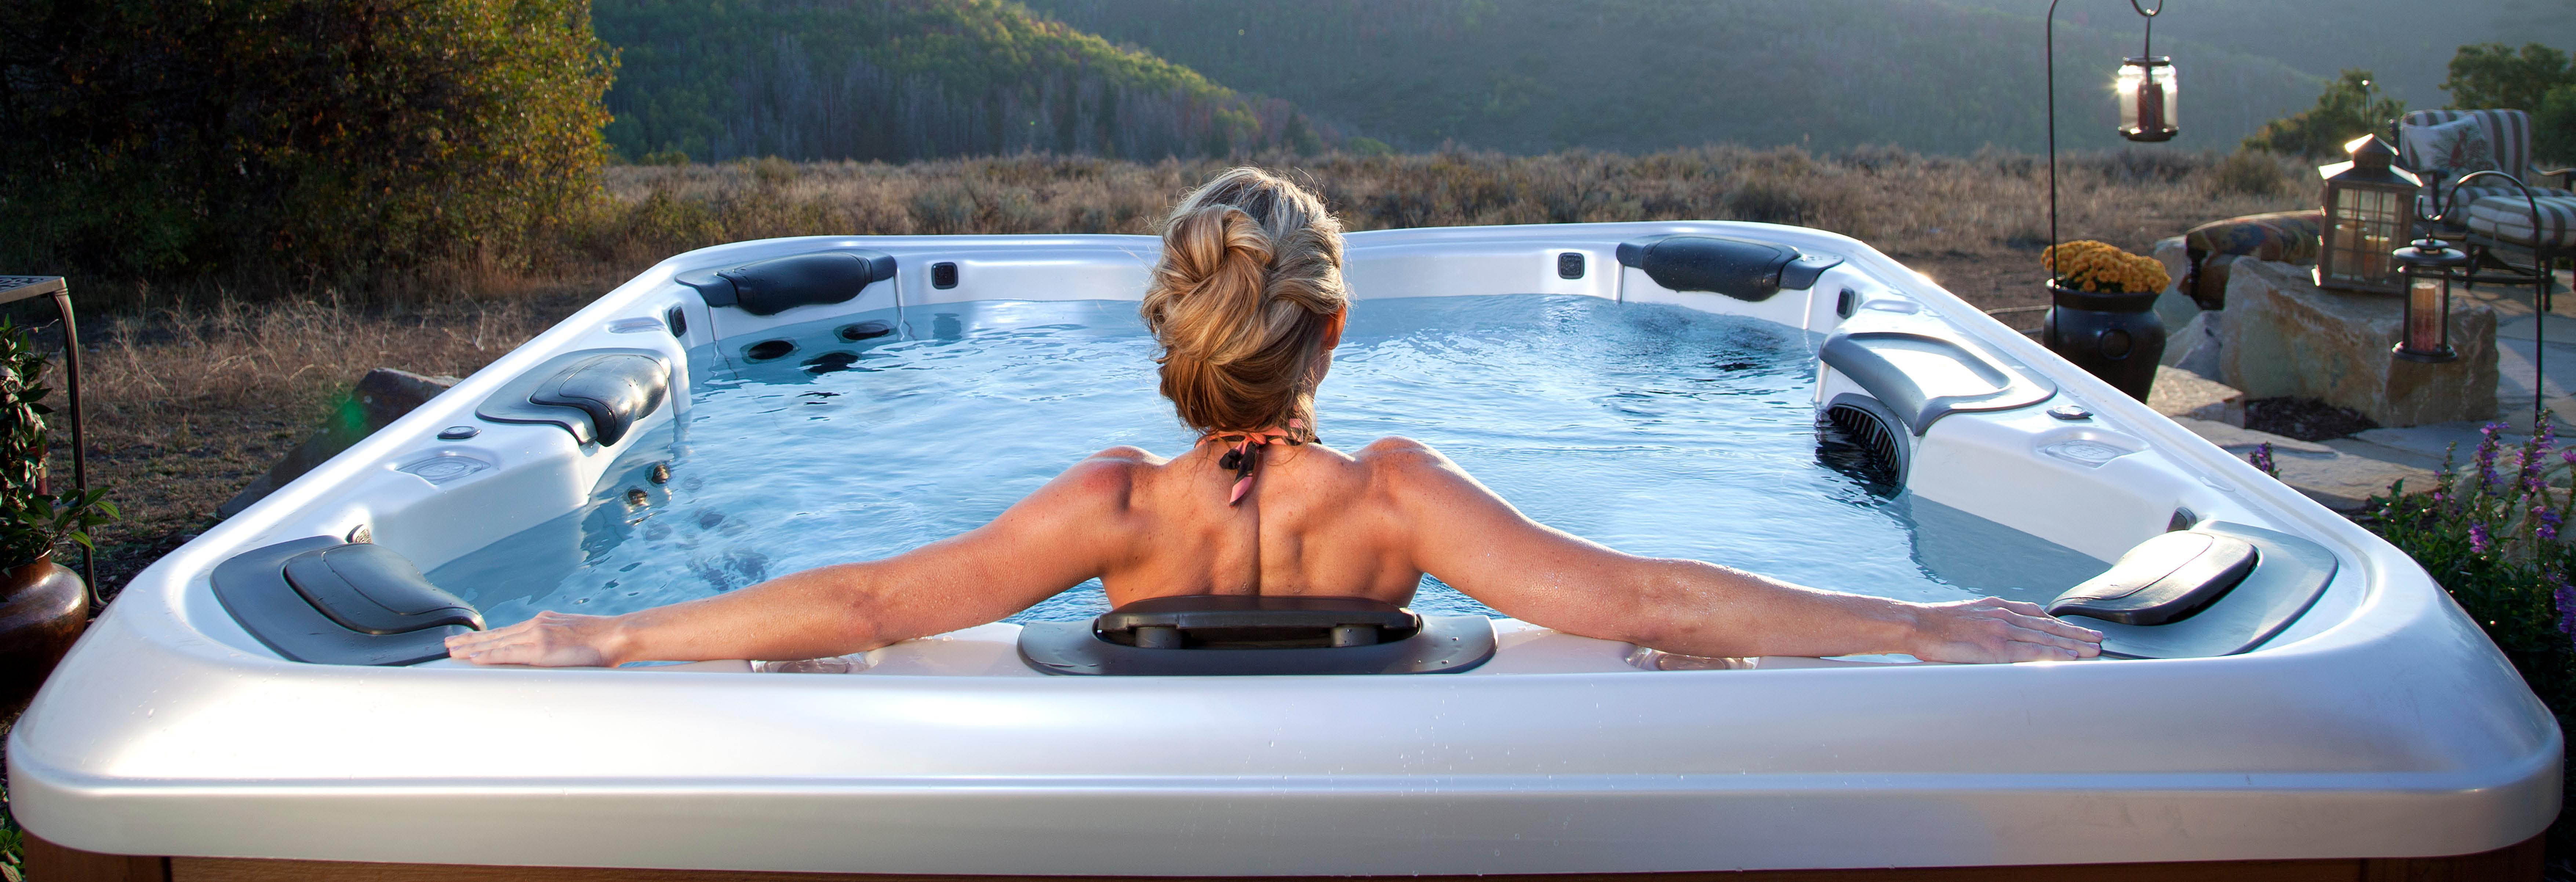 pool pools save on pool hot tub hot tubs near me spa spas near me pool heater outdoor kitchen